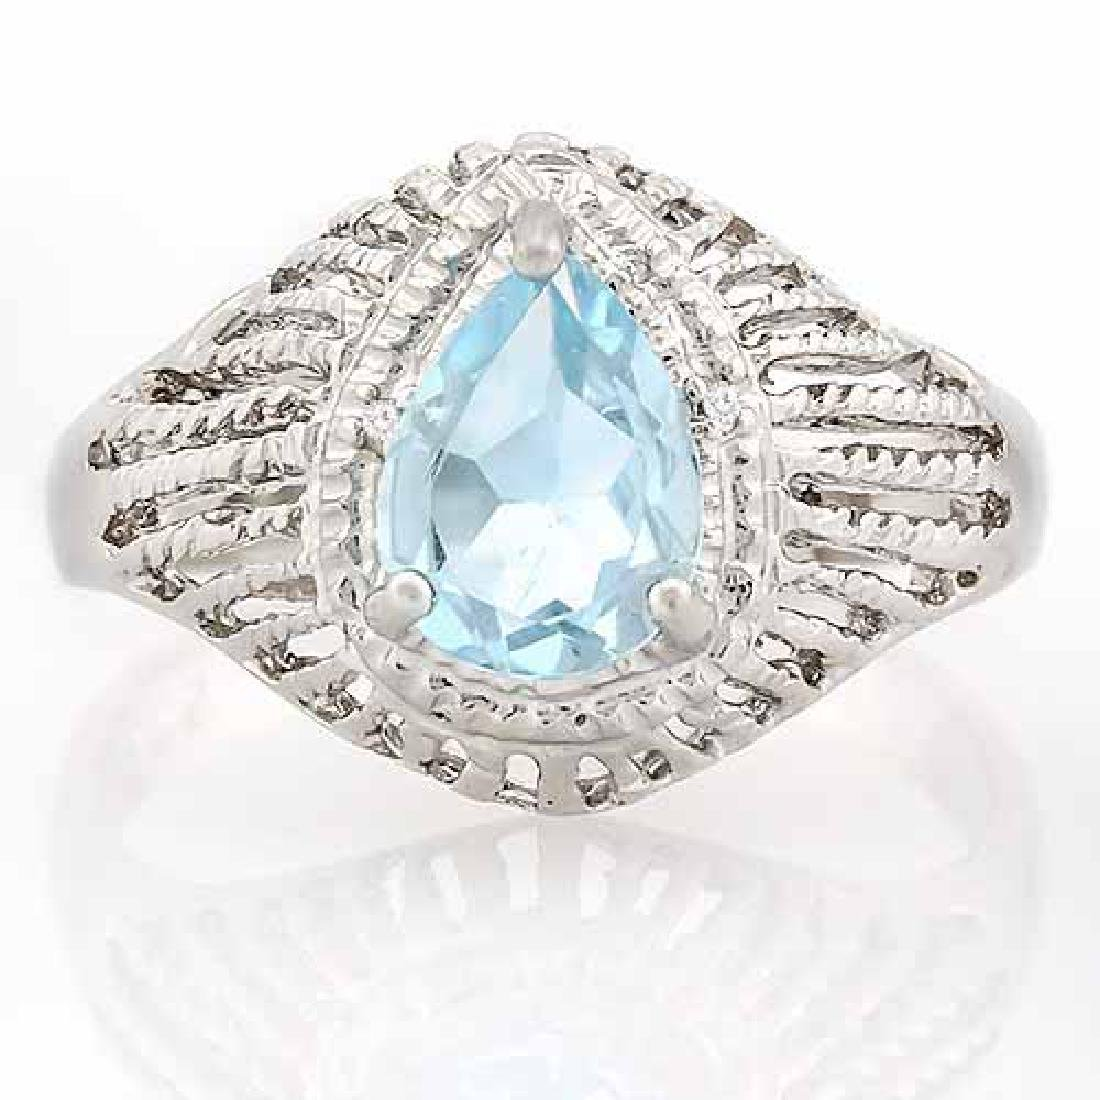 1 CARAT BABY SWISS BLUE TOPAZ & DIAMOND 925 STERLING SI